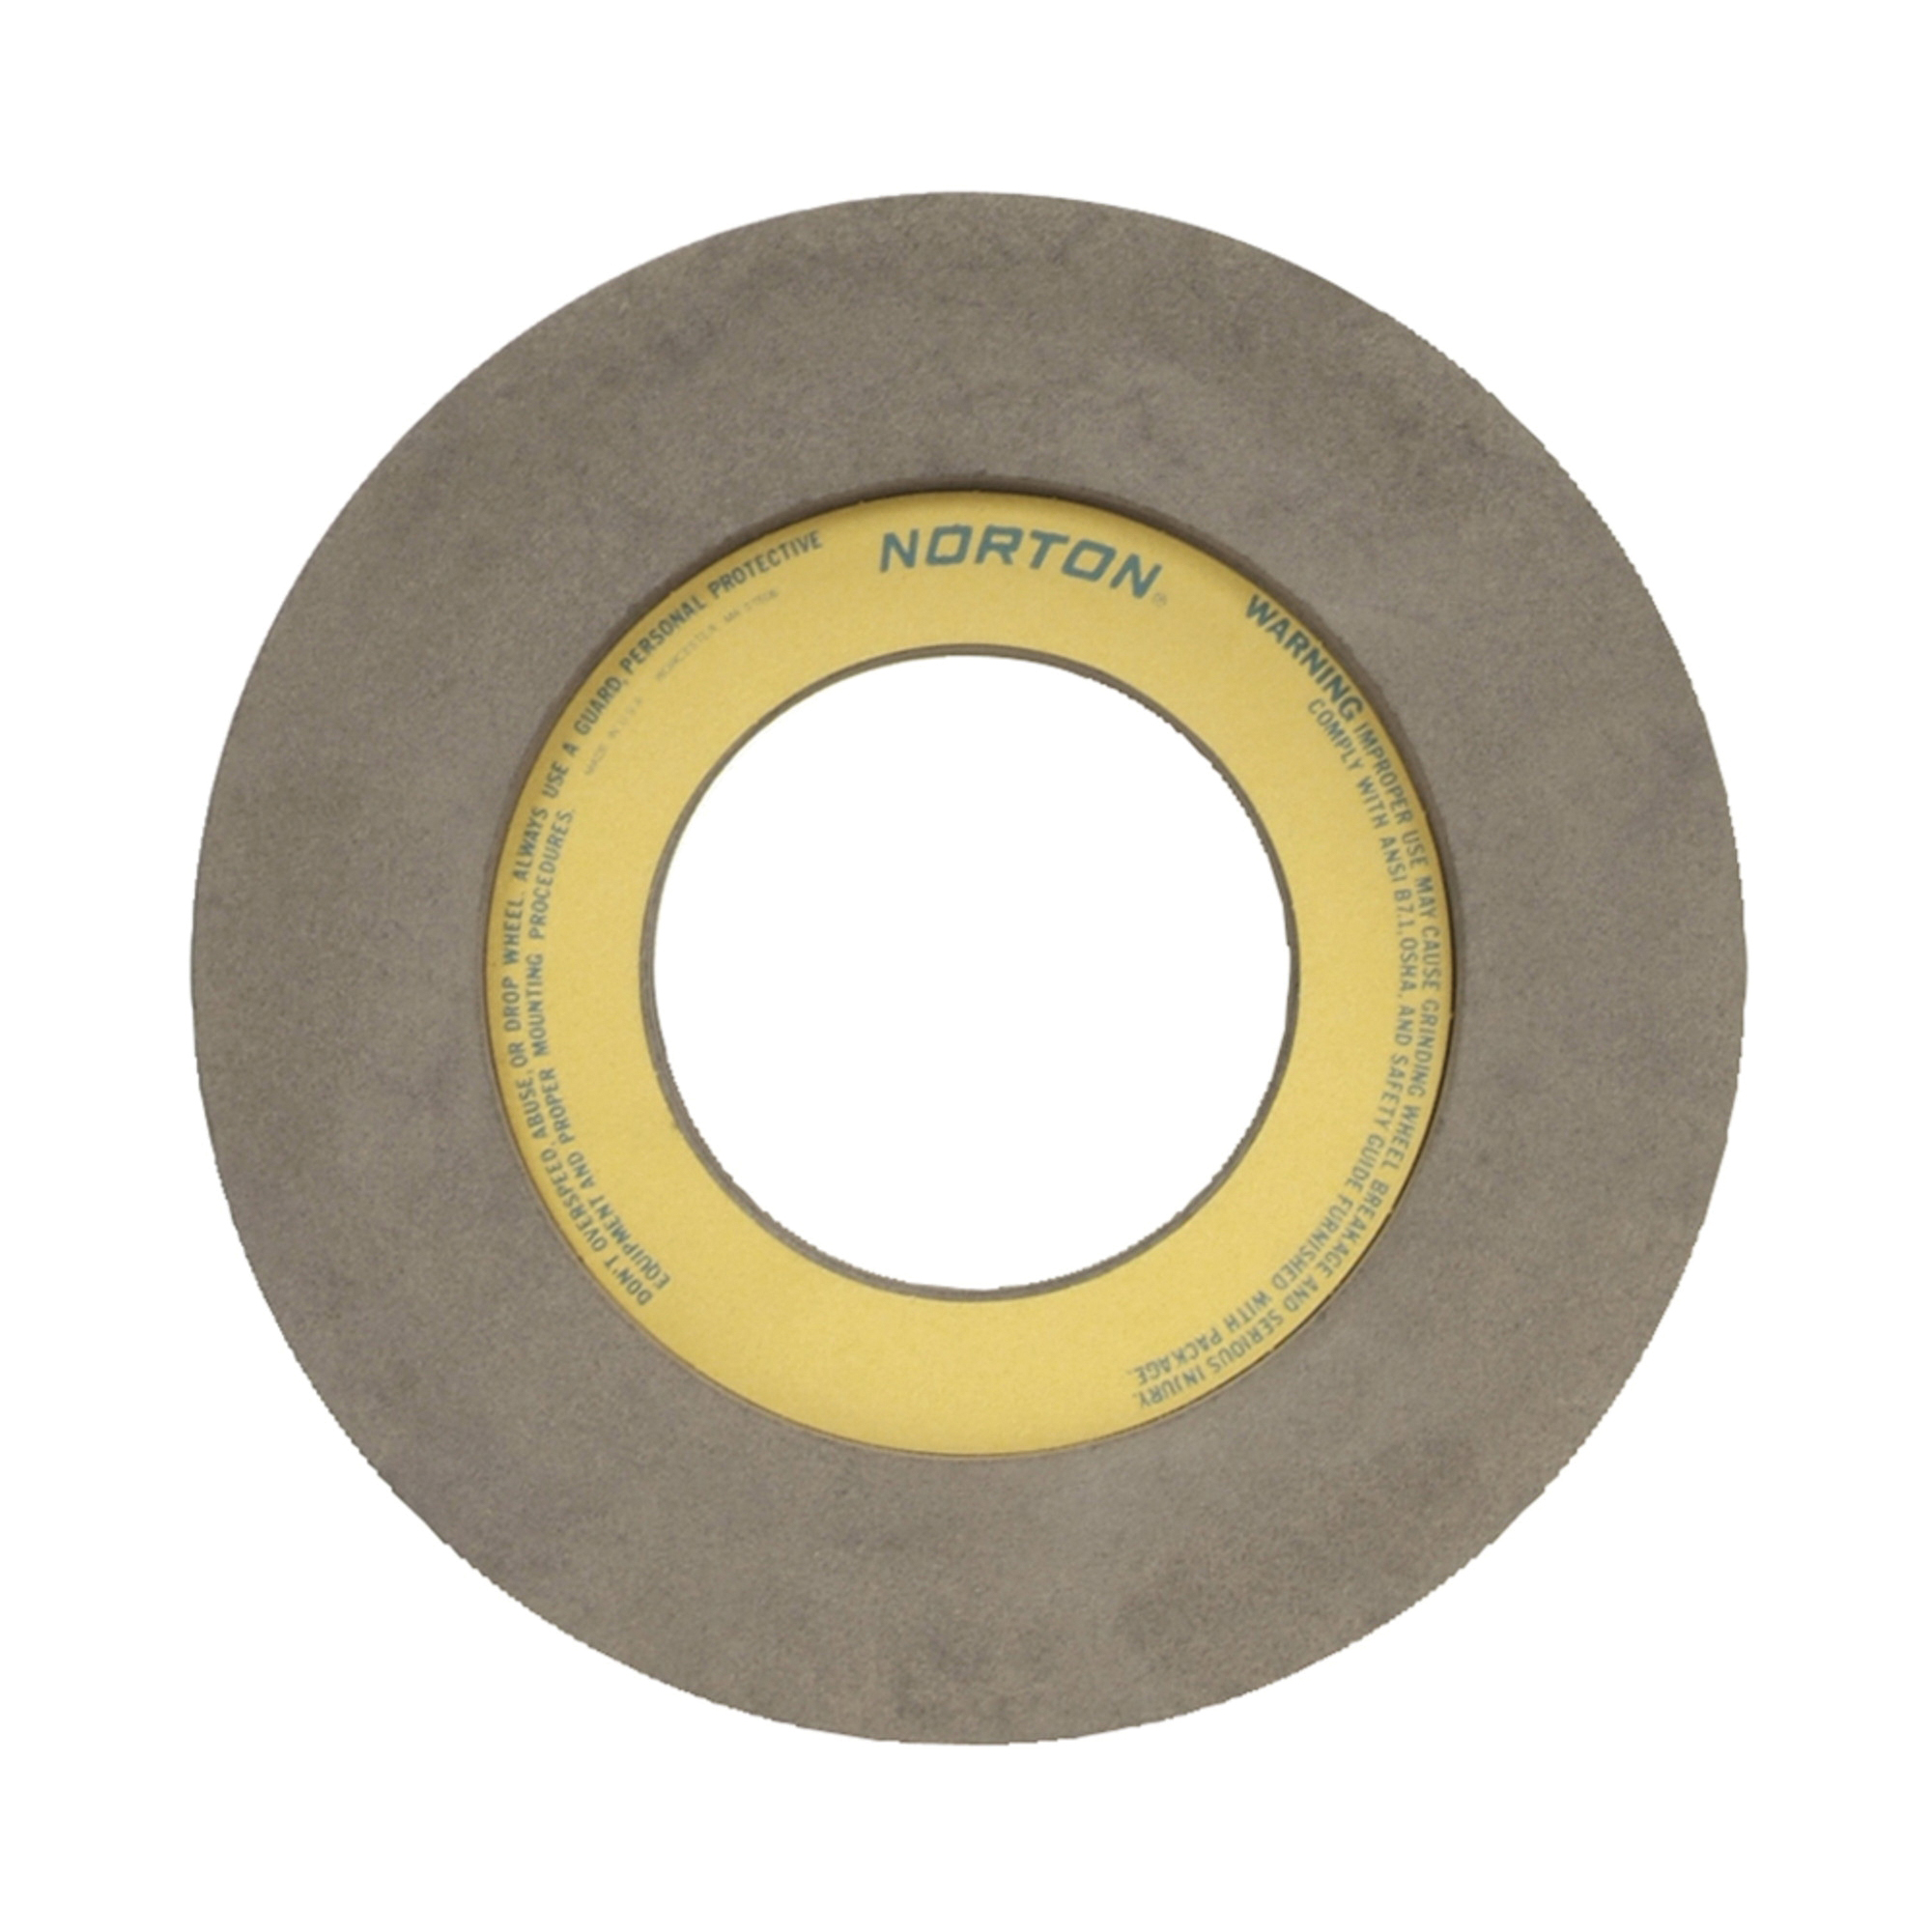 Norton® 66253222847 57A Centerless Feed Wheel, 12 in Dia x 6 in W, 5 in Hole, Type 7, 80 Grit